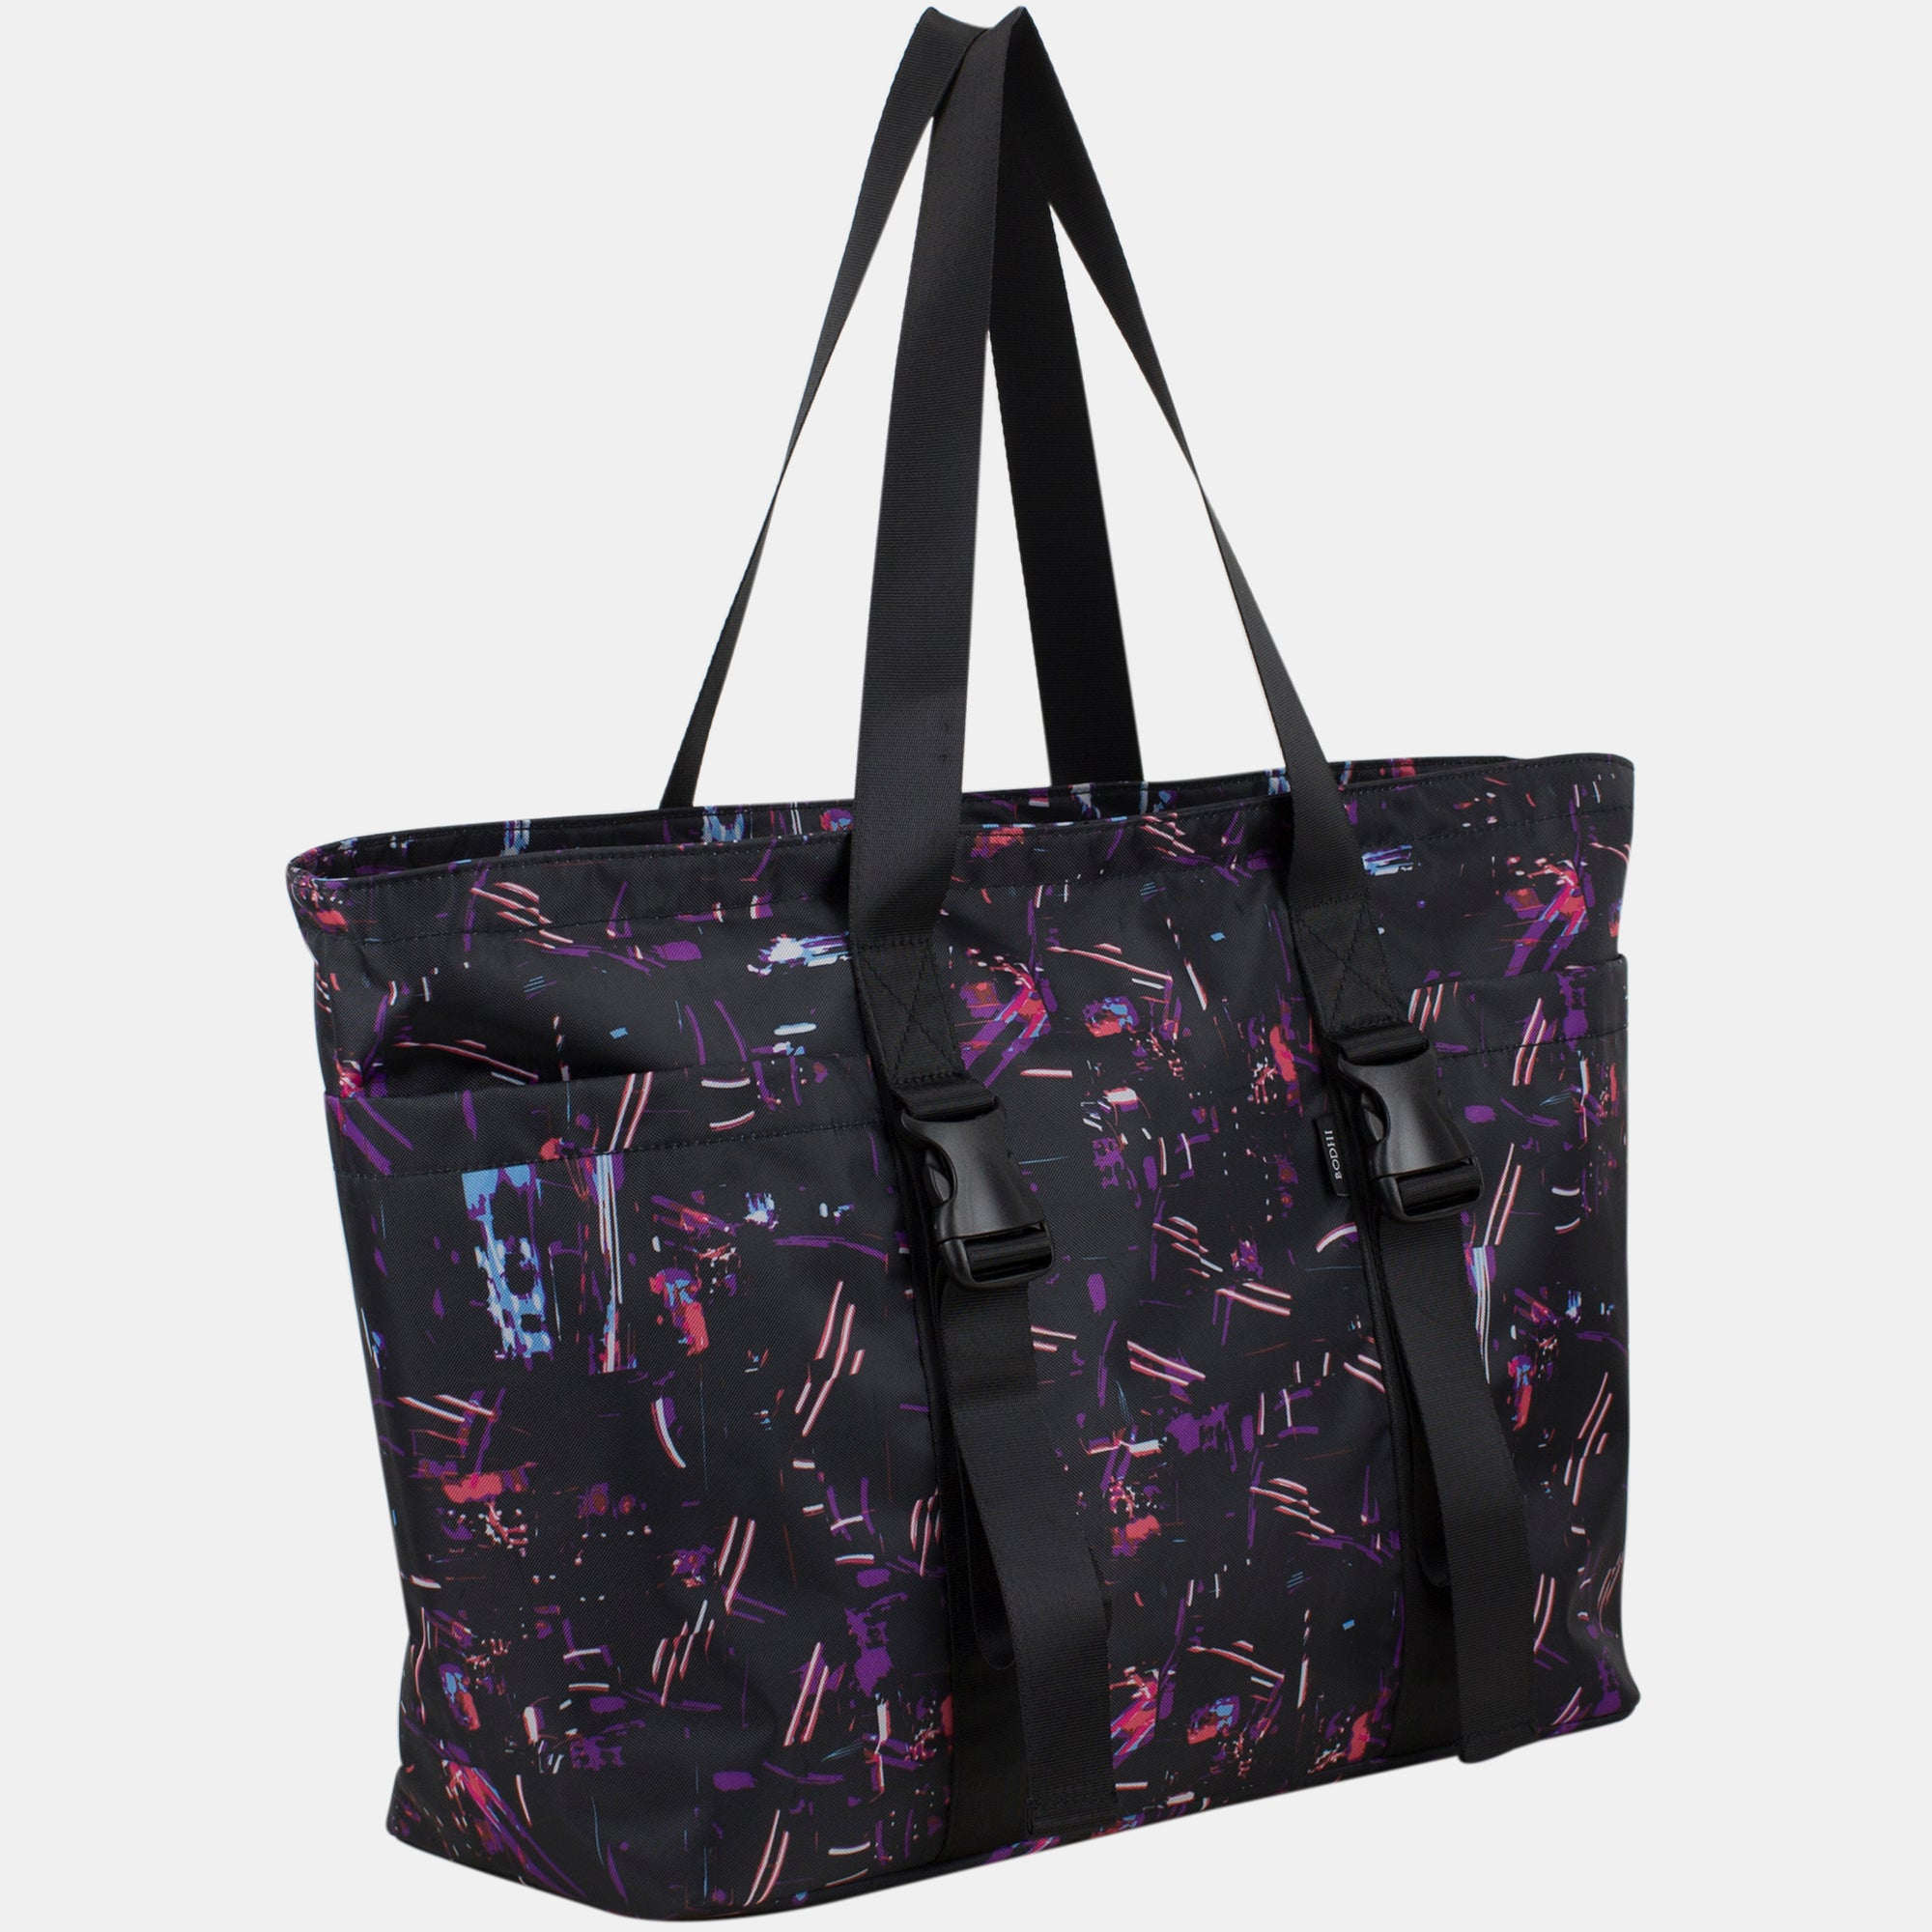 BODHI Athleisure Tote Bag